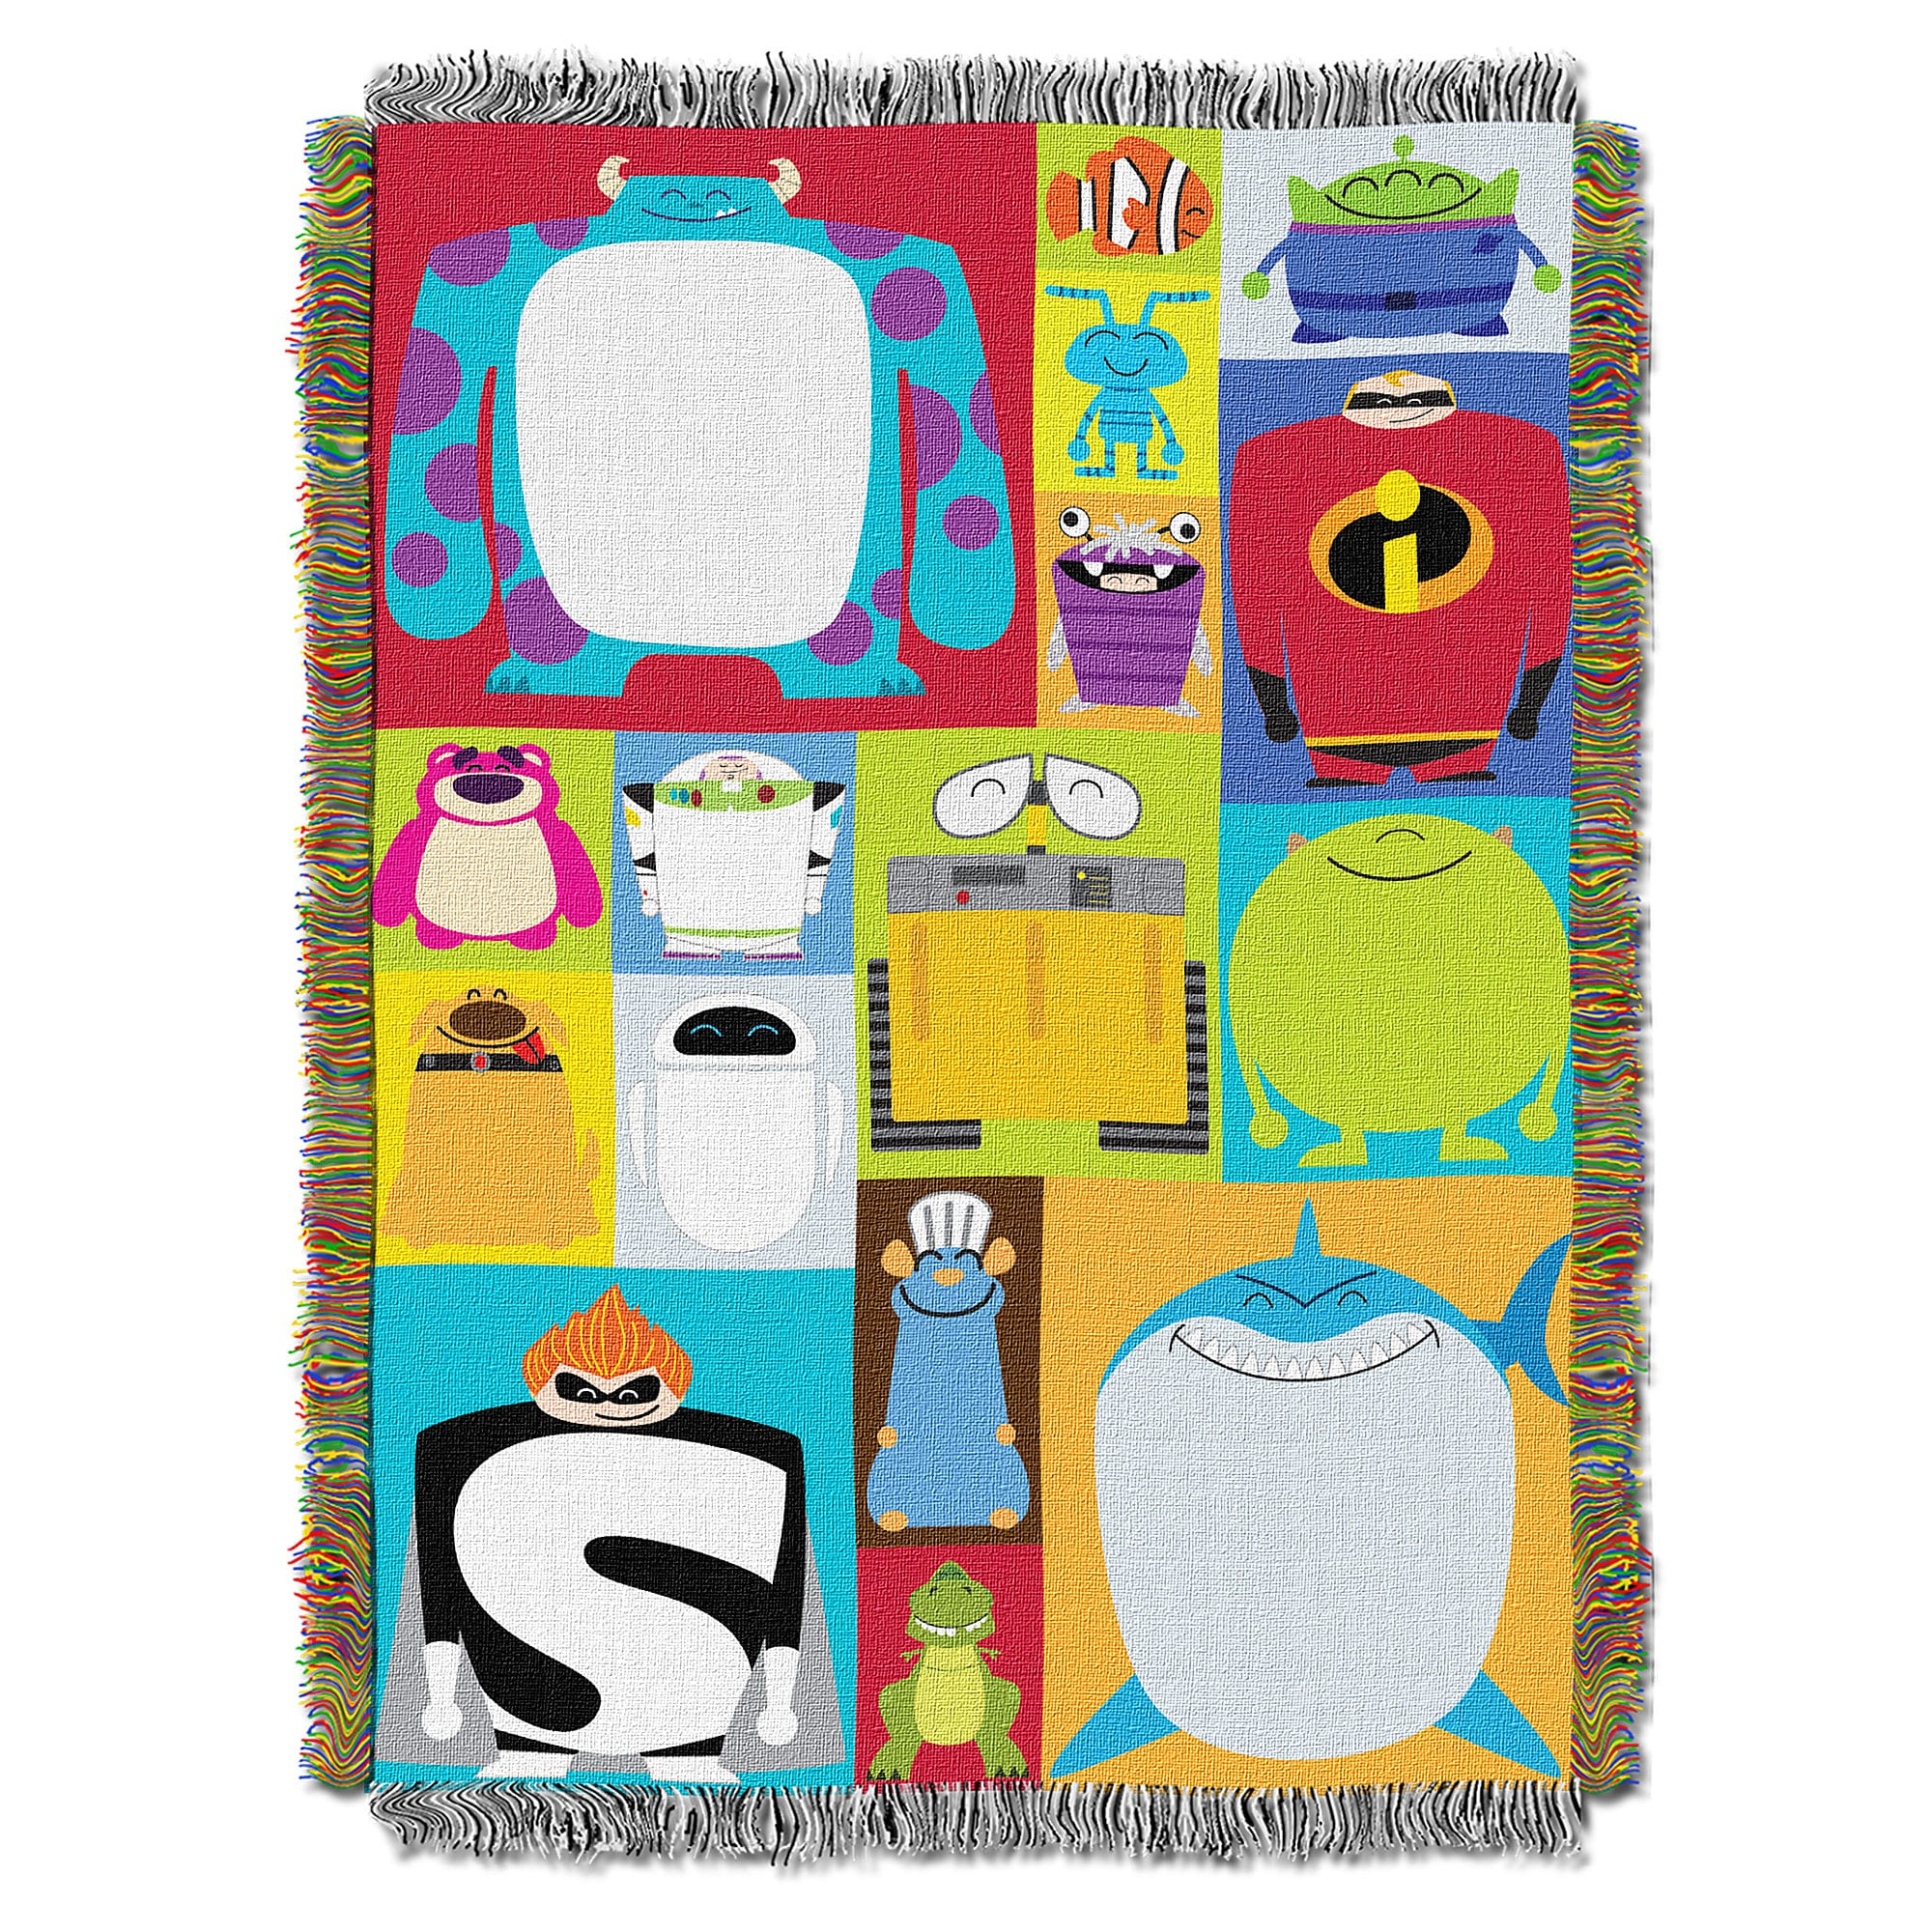 PIXAR Character Blocks Woven Tapestry Throw